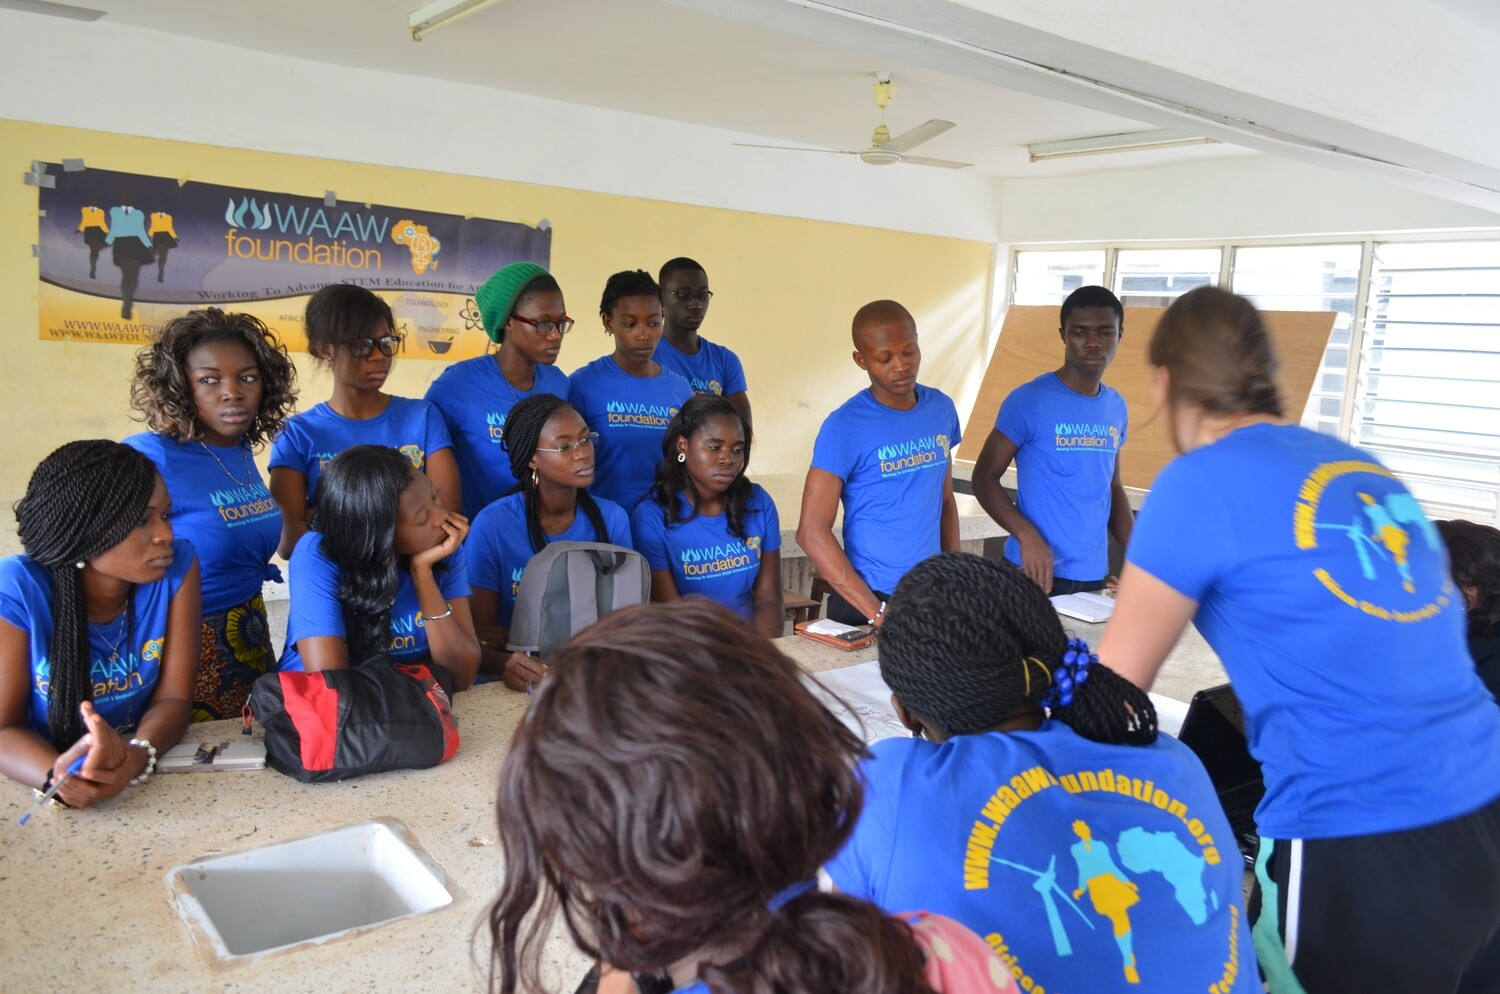 Global Youth Scholars Program - Participation Fee